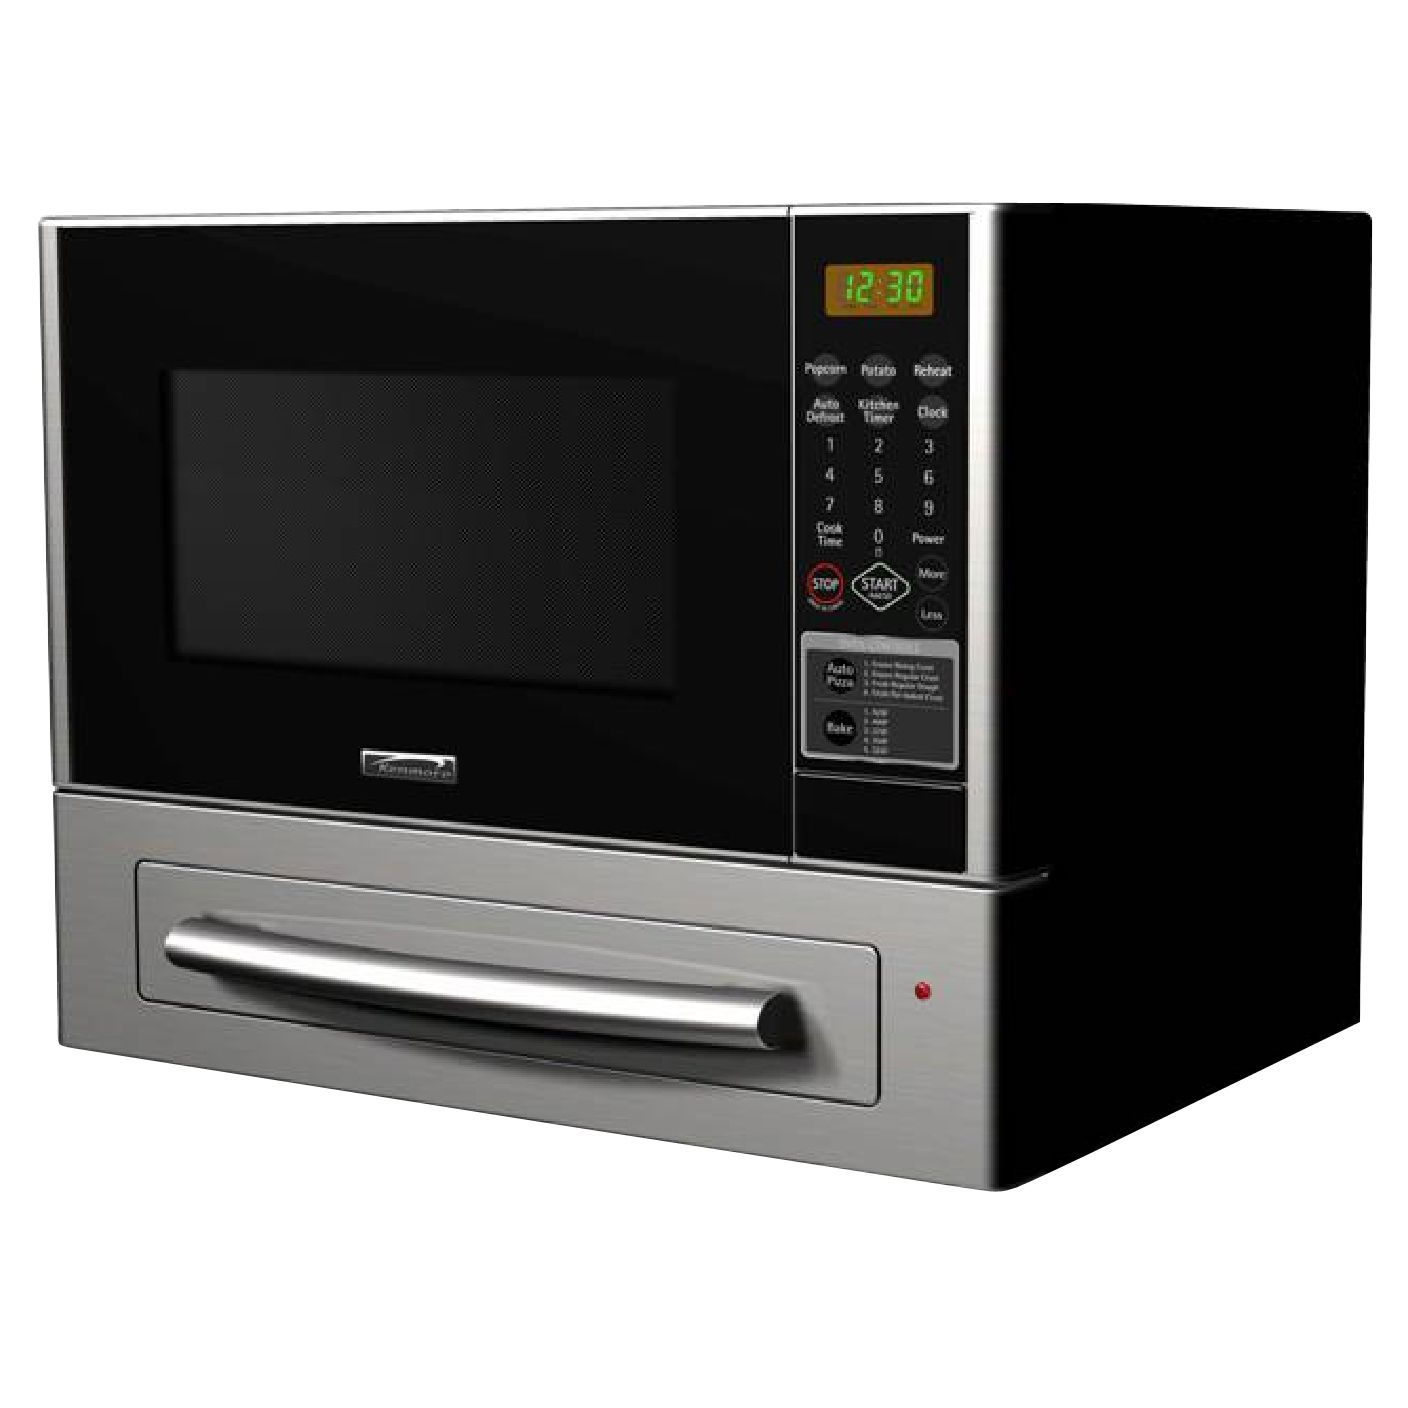 Kenmore 20 1 1 Cu Ft Pizza Maker And Microwave Oven